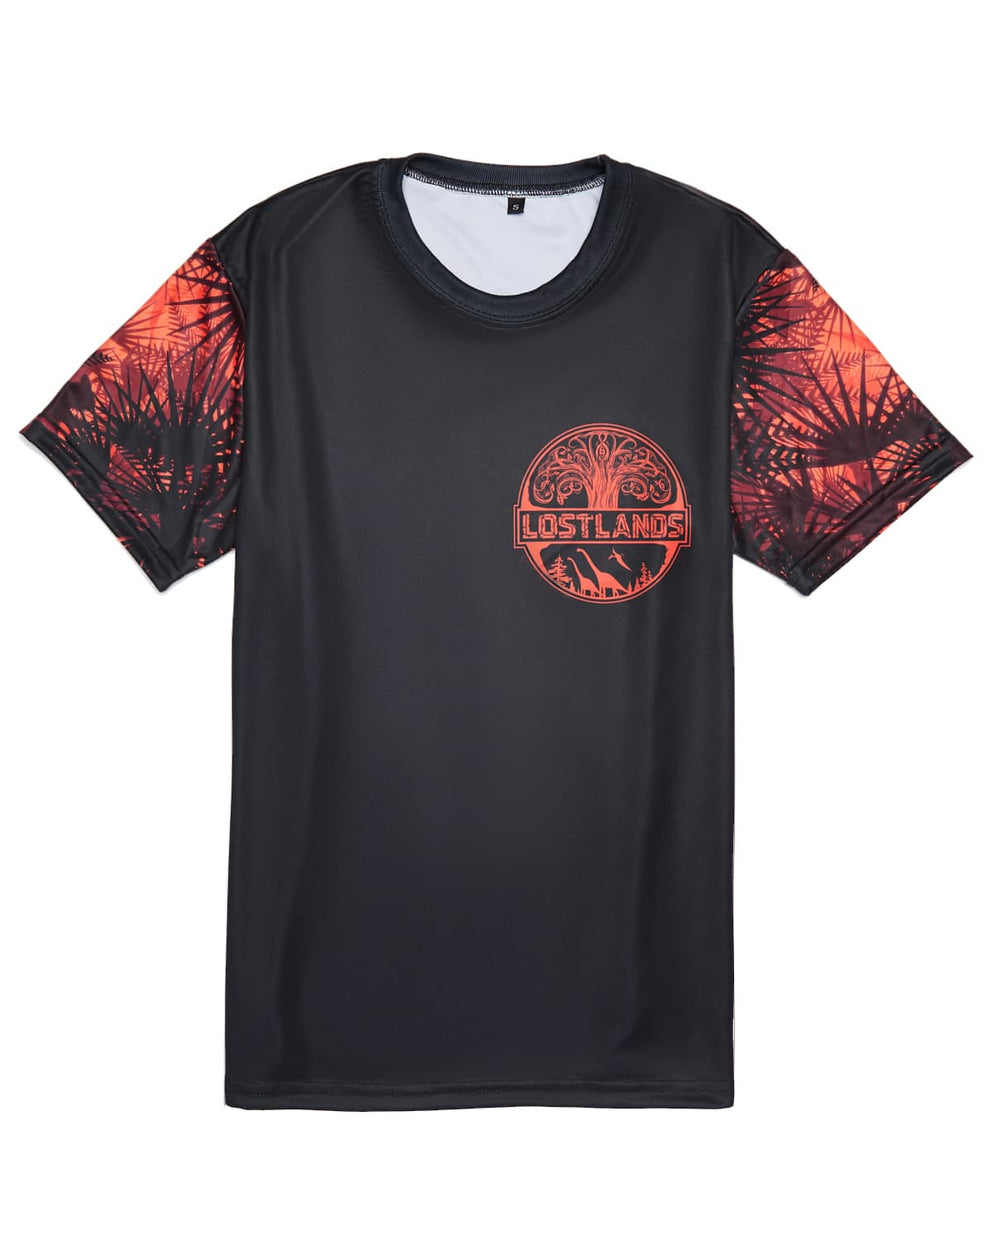 Official Lost Lands 2018 T-Shirt (Black/Red)